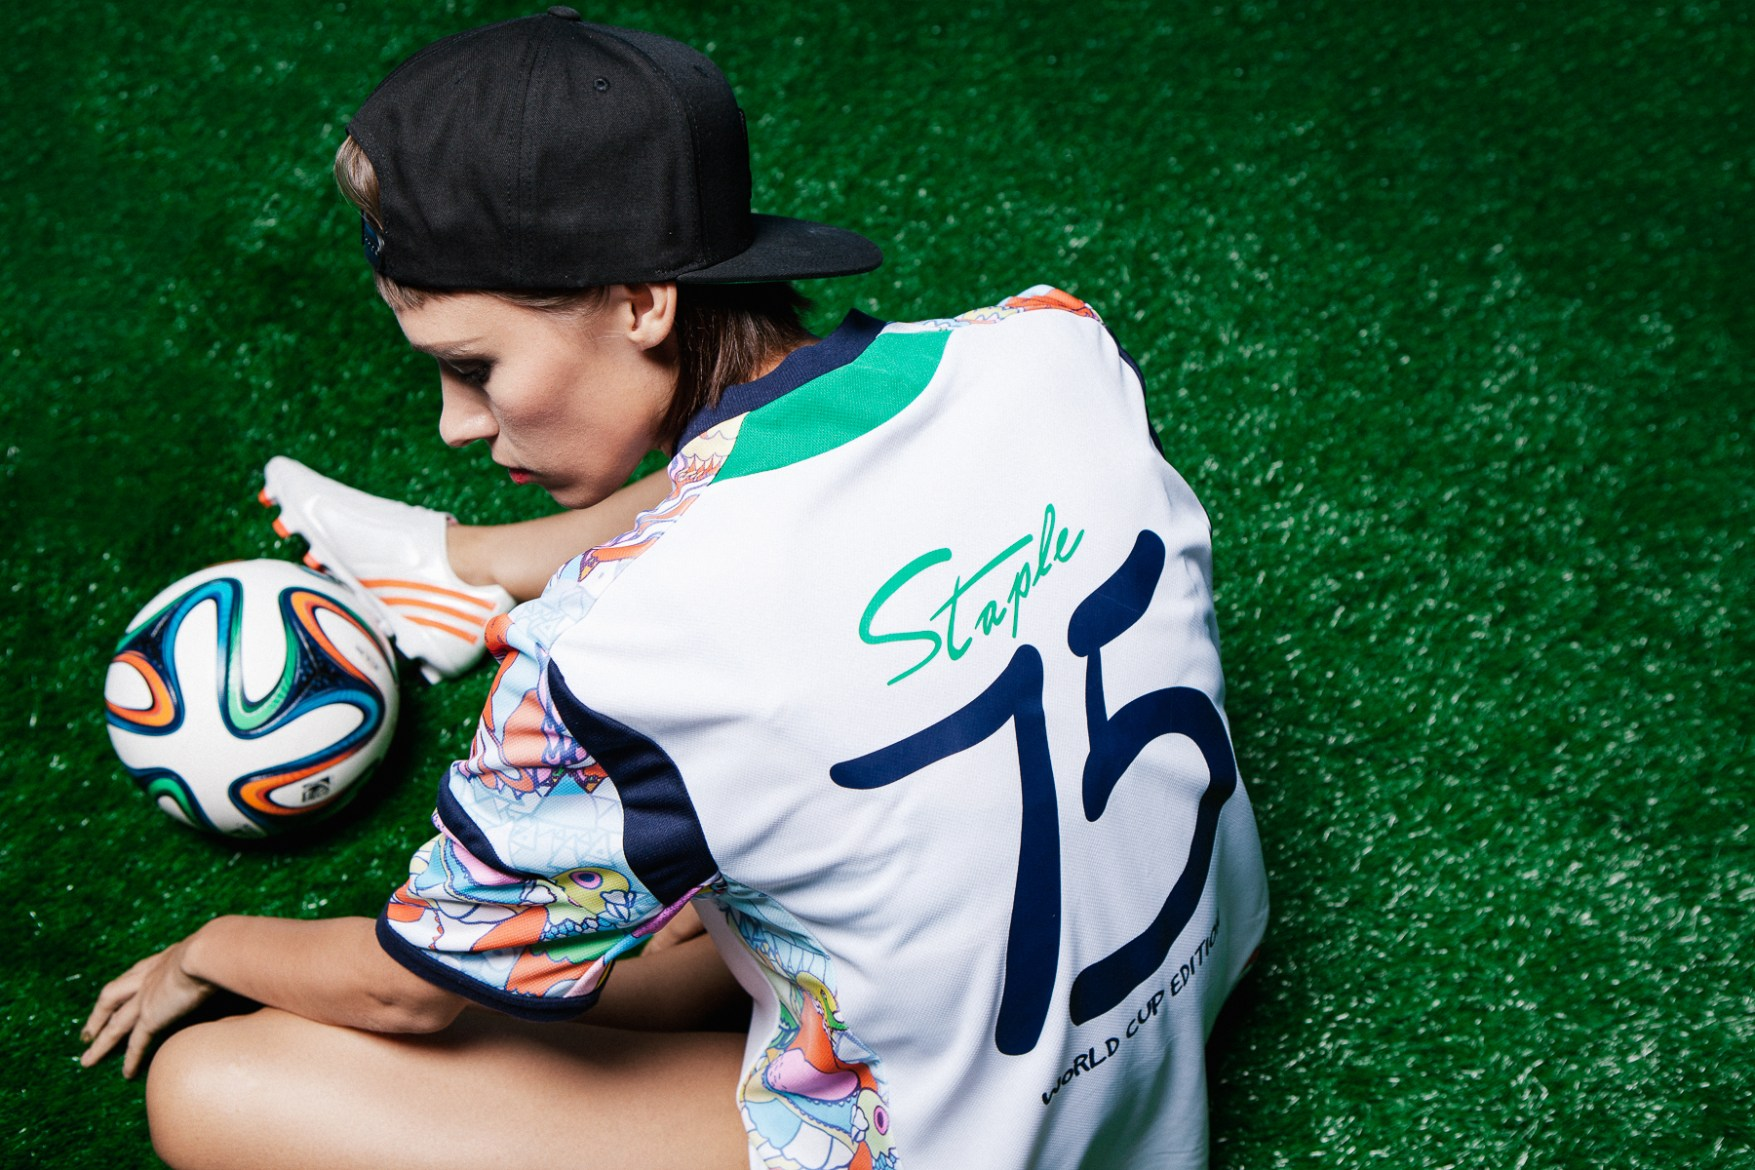 Staple 2014 Spring/Summer Soccer Jerseys